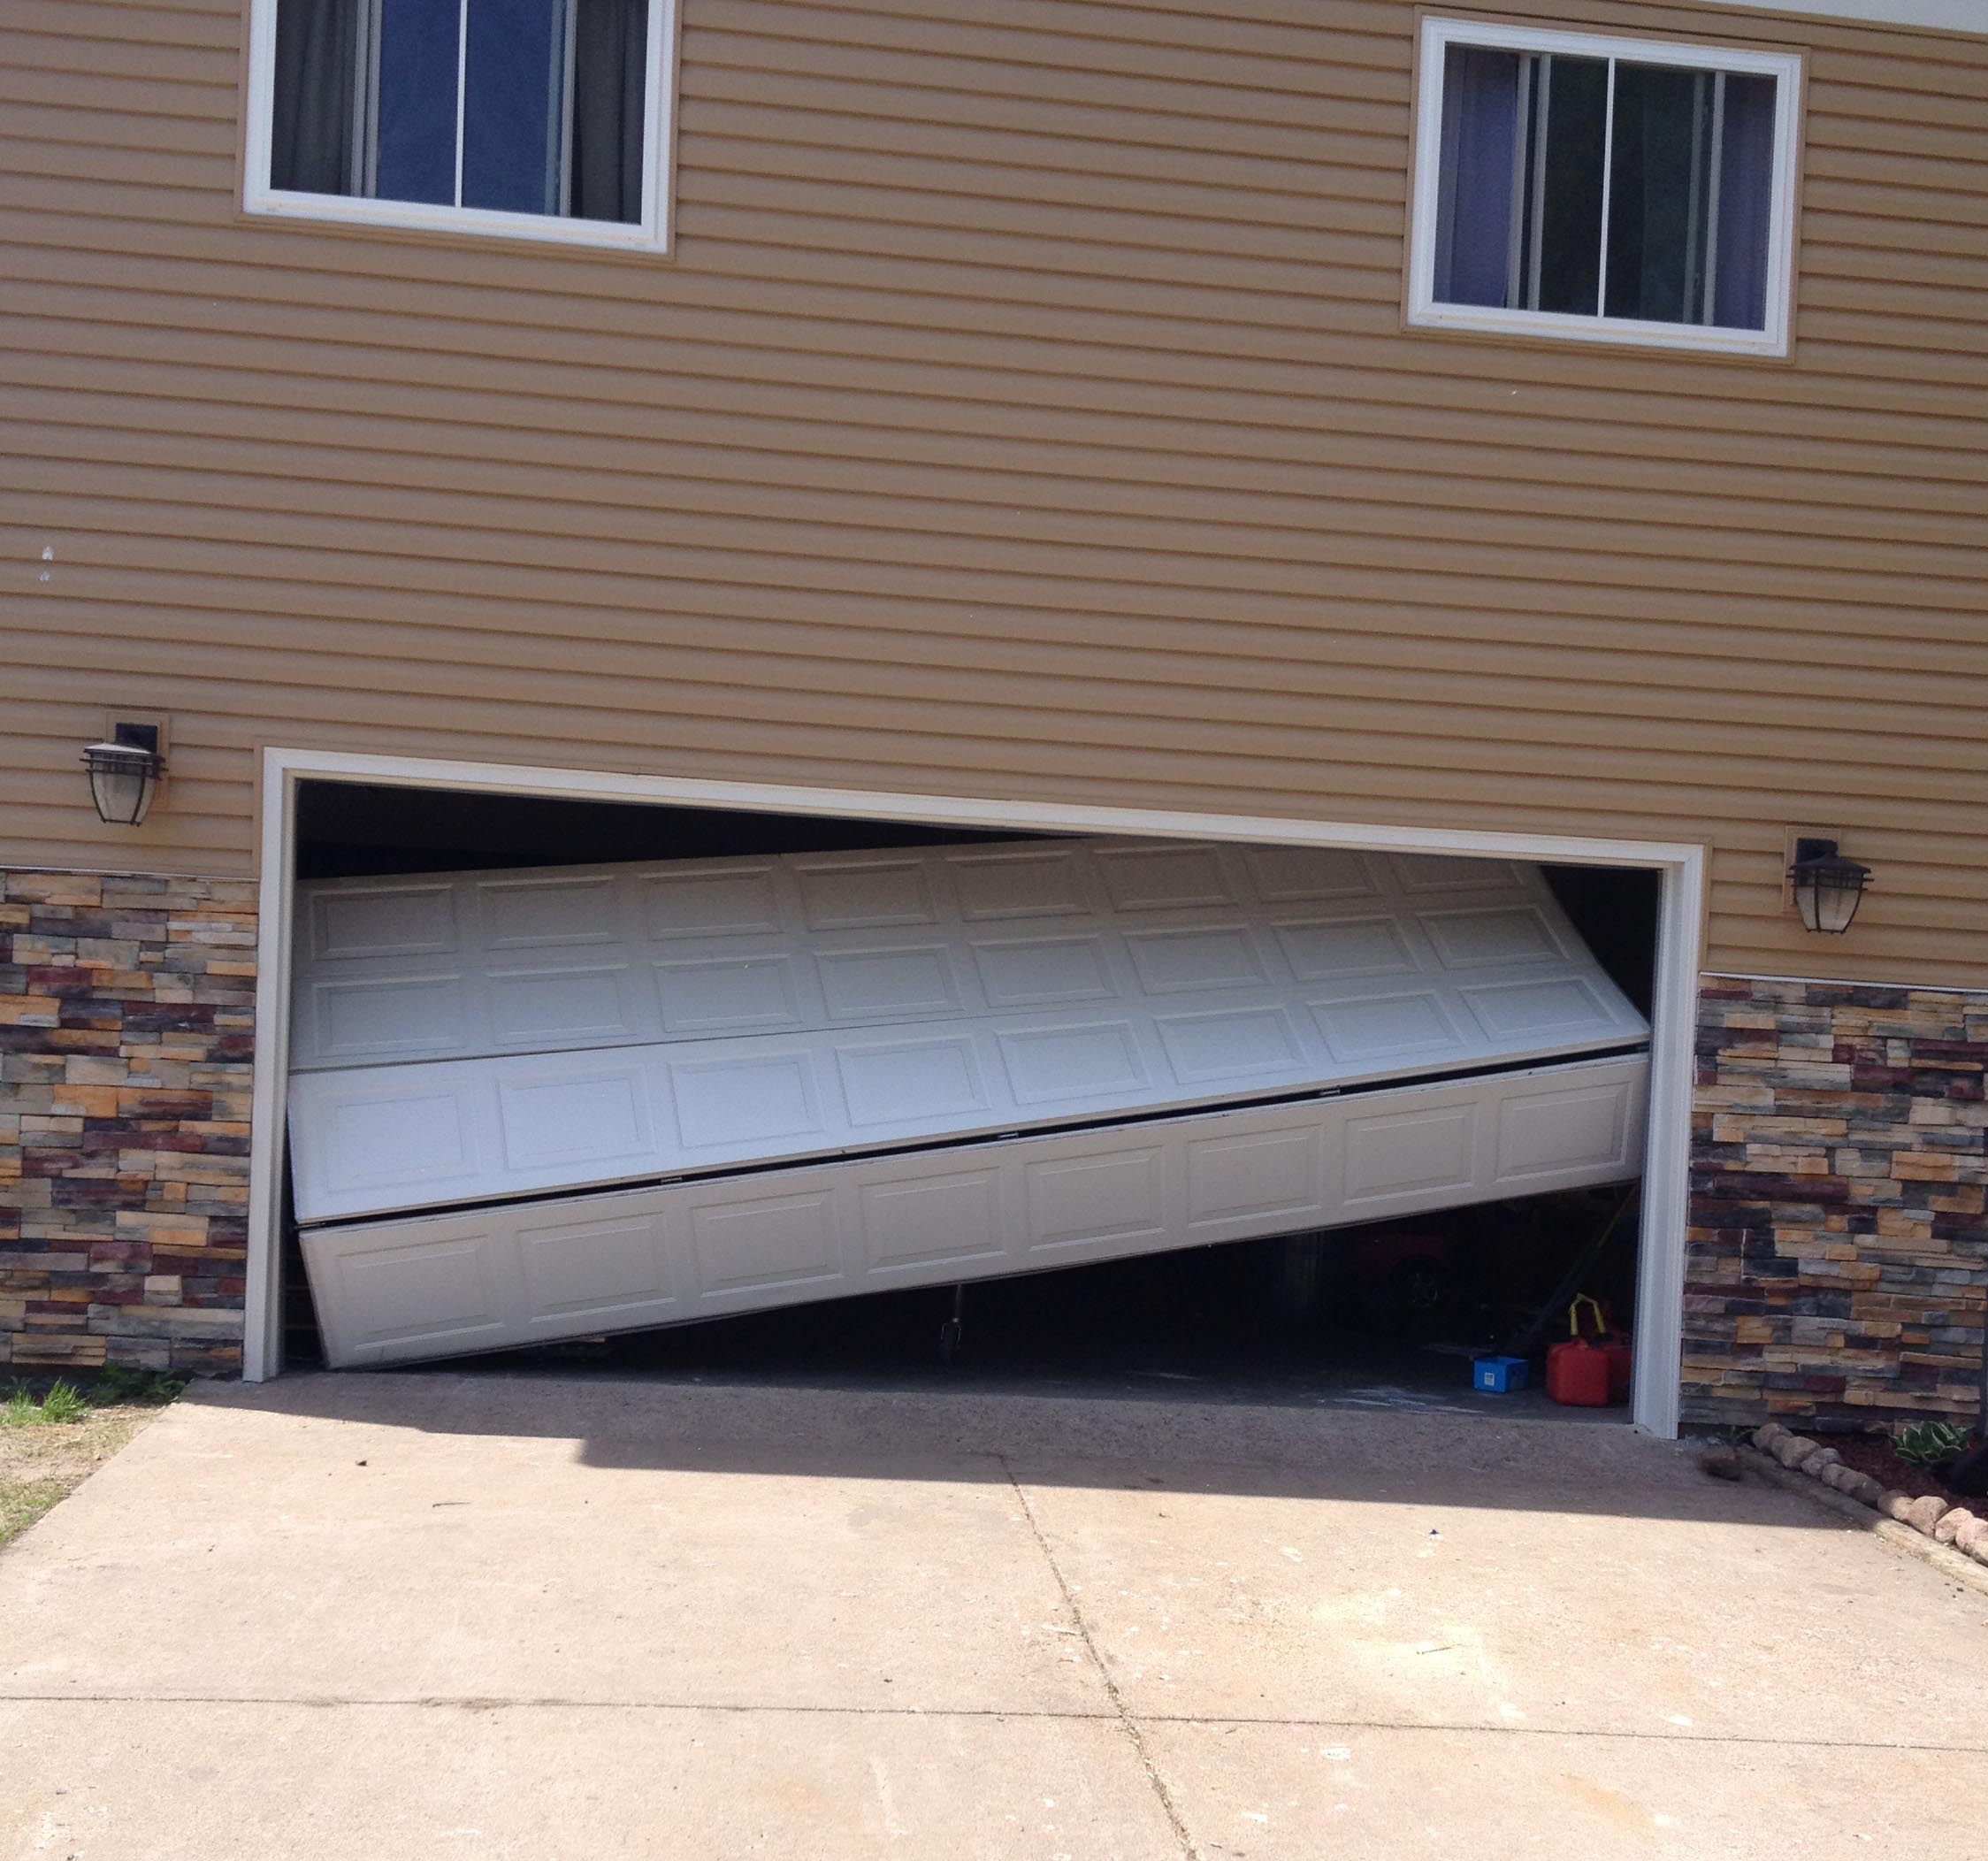 Lino Lakes Garage Doors Repairs Installations Services